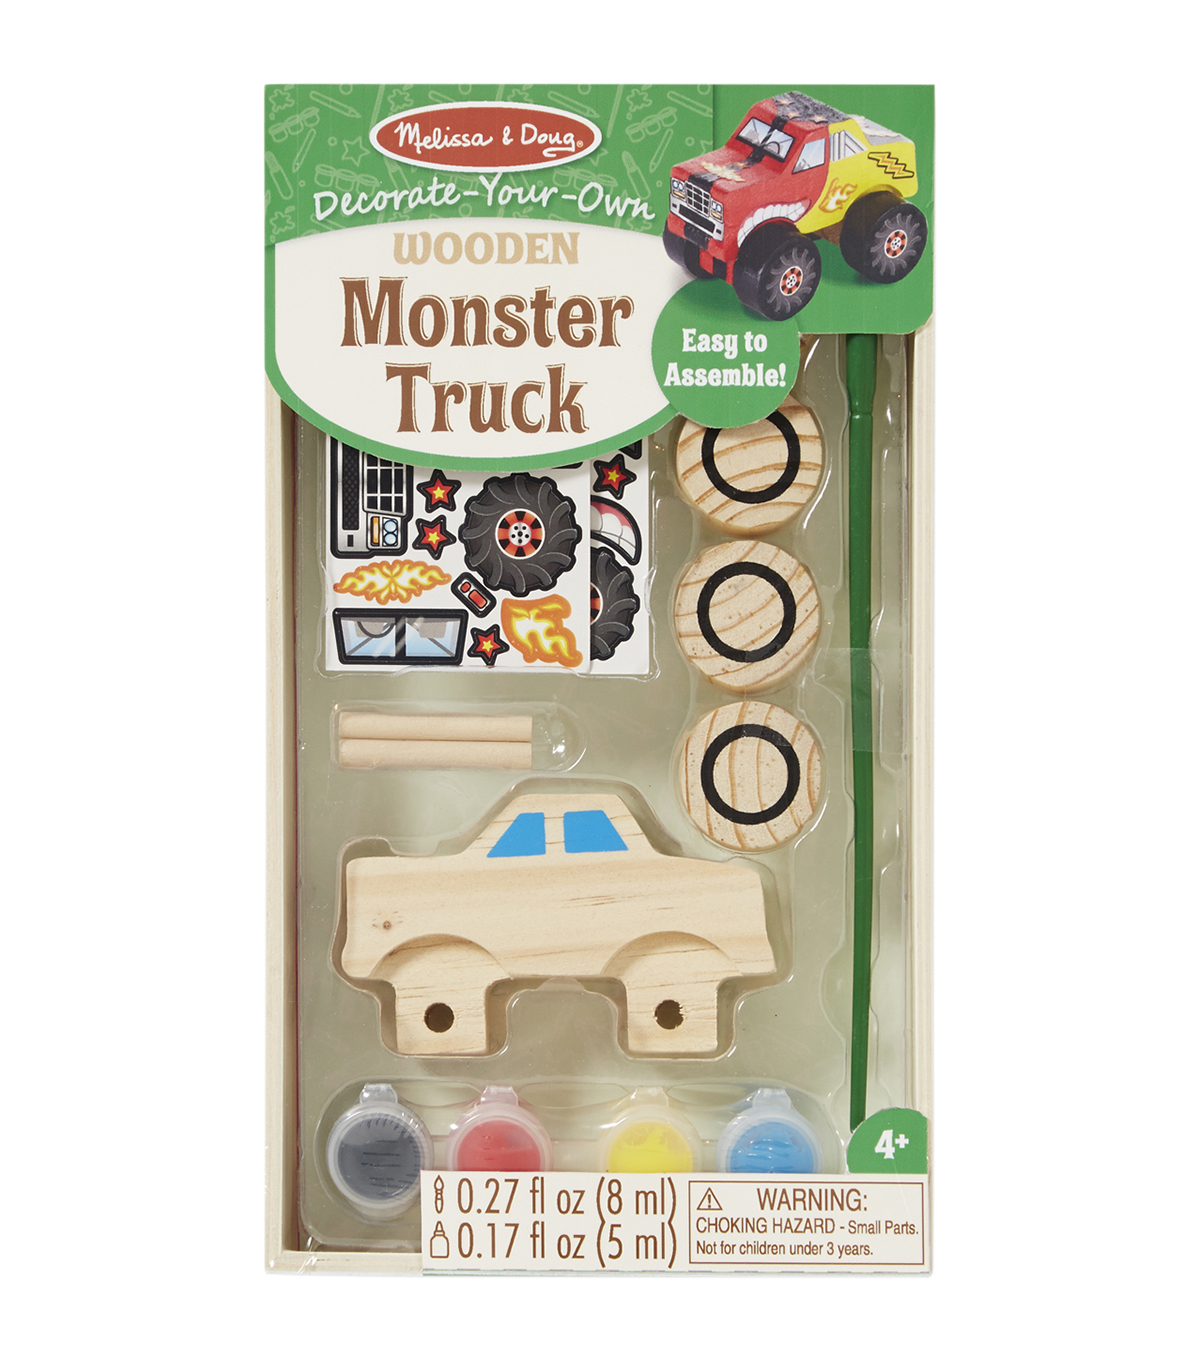 Melissa & Doug Decorate-Your-Own Wooden Kit-Monster Truck